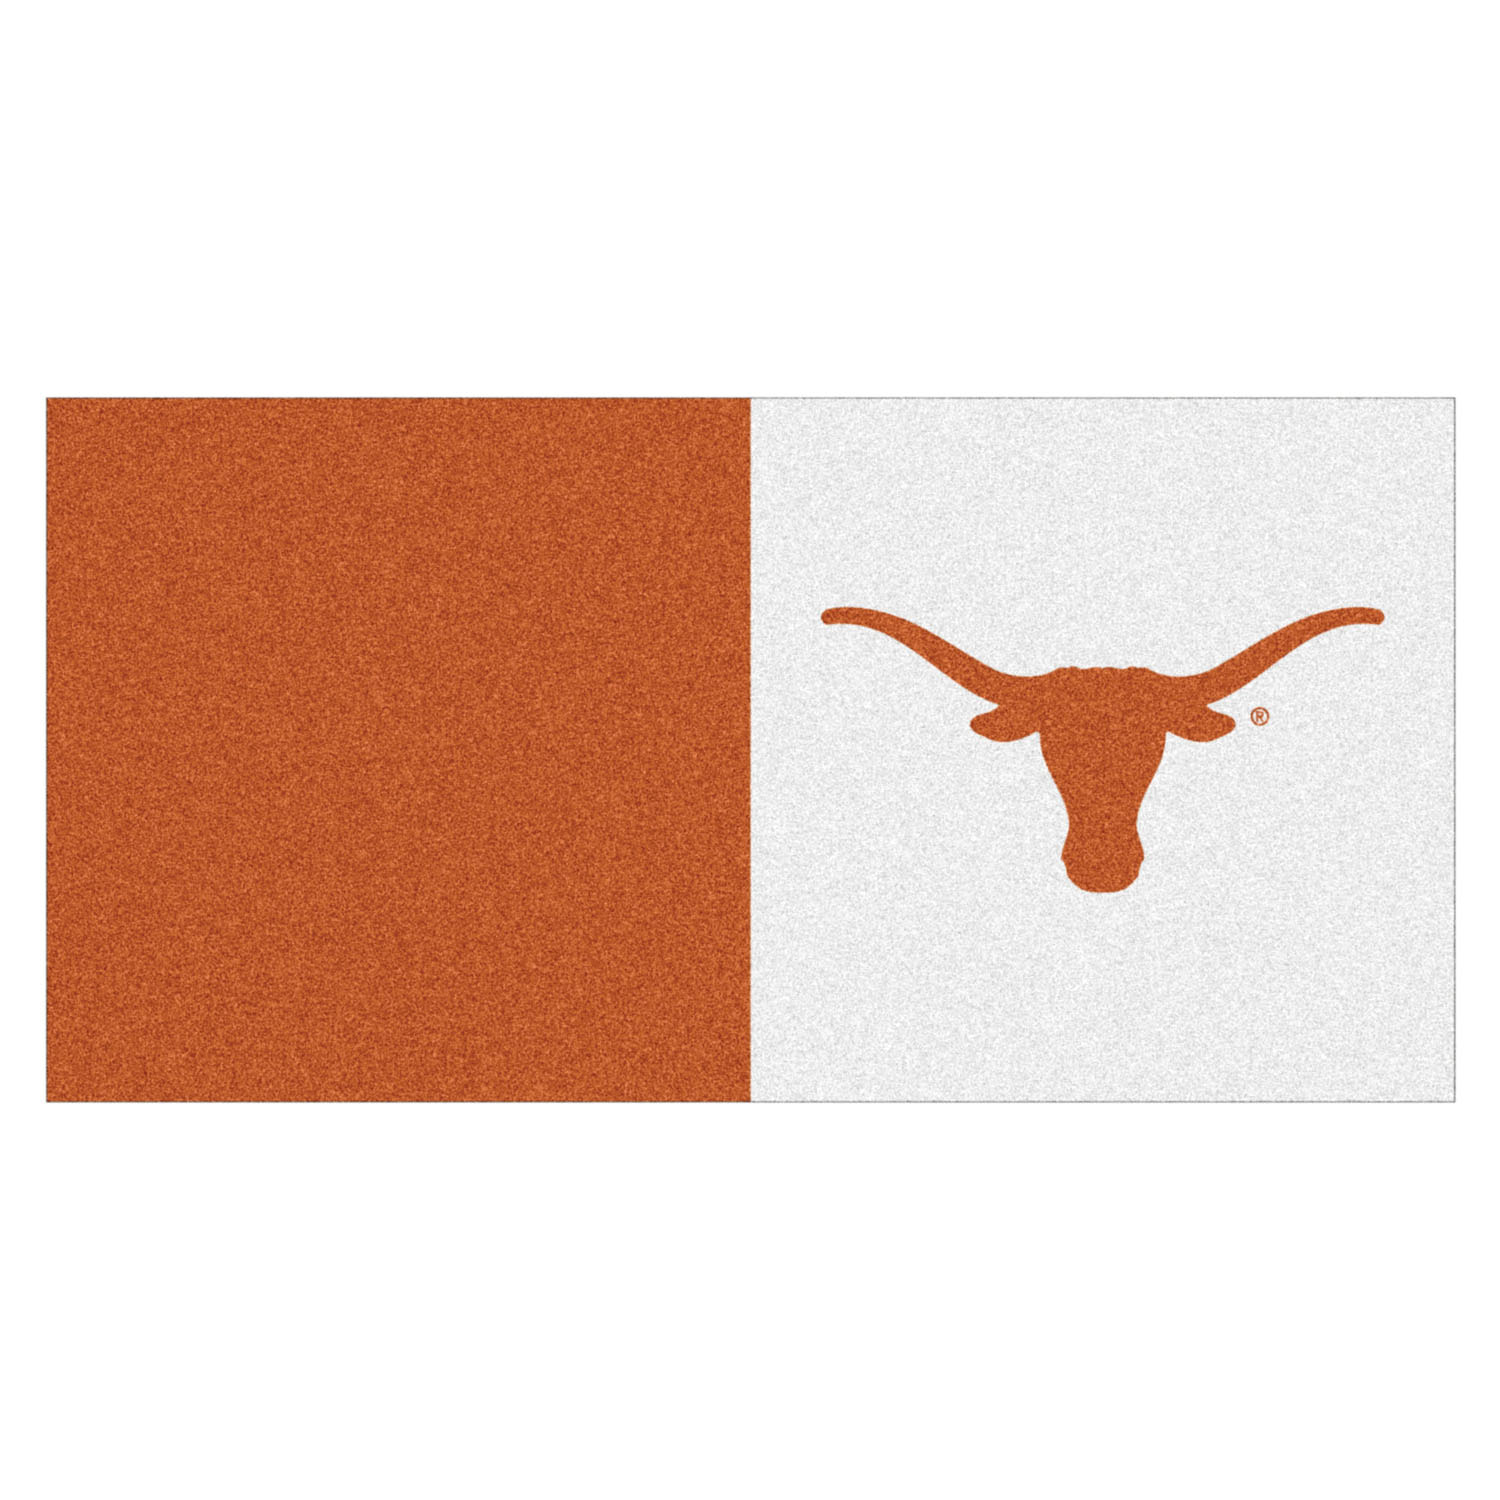 "Fanmats Texas Carpet Tiles 18""x18"" tiles"